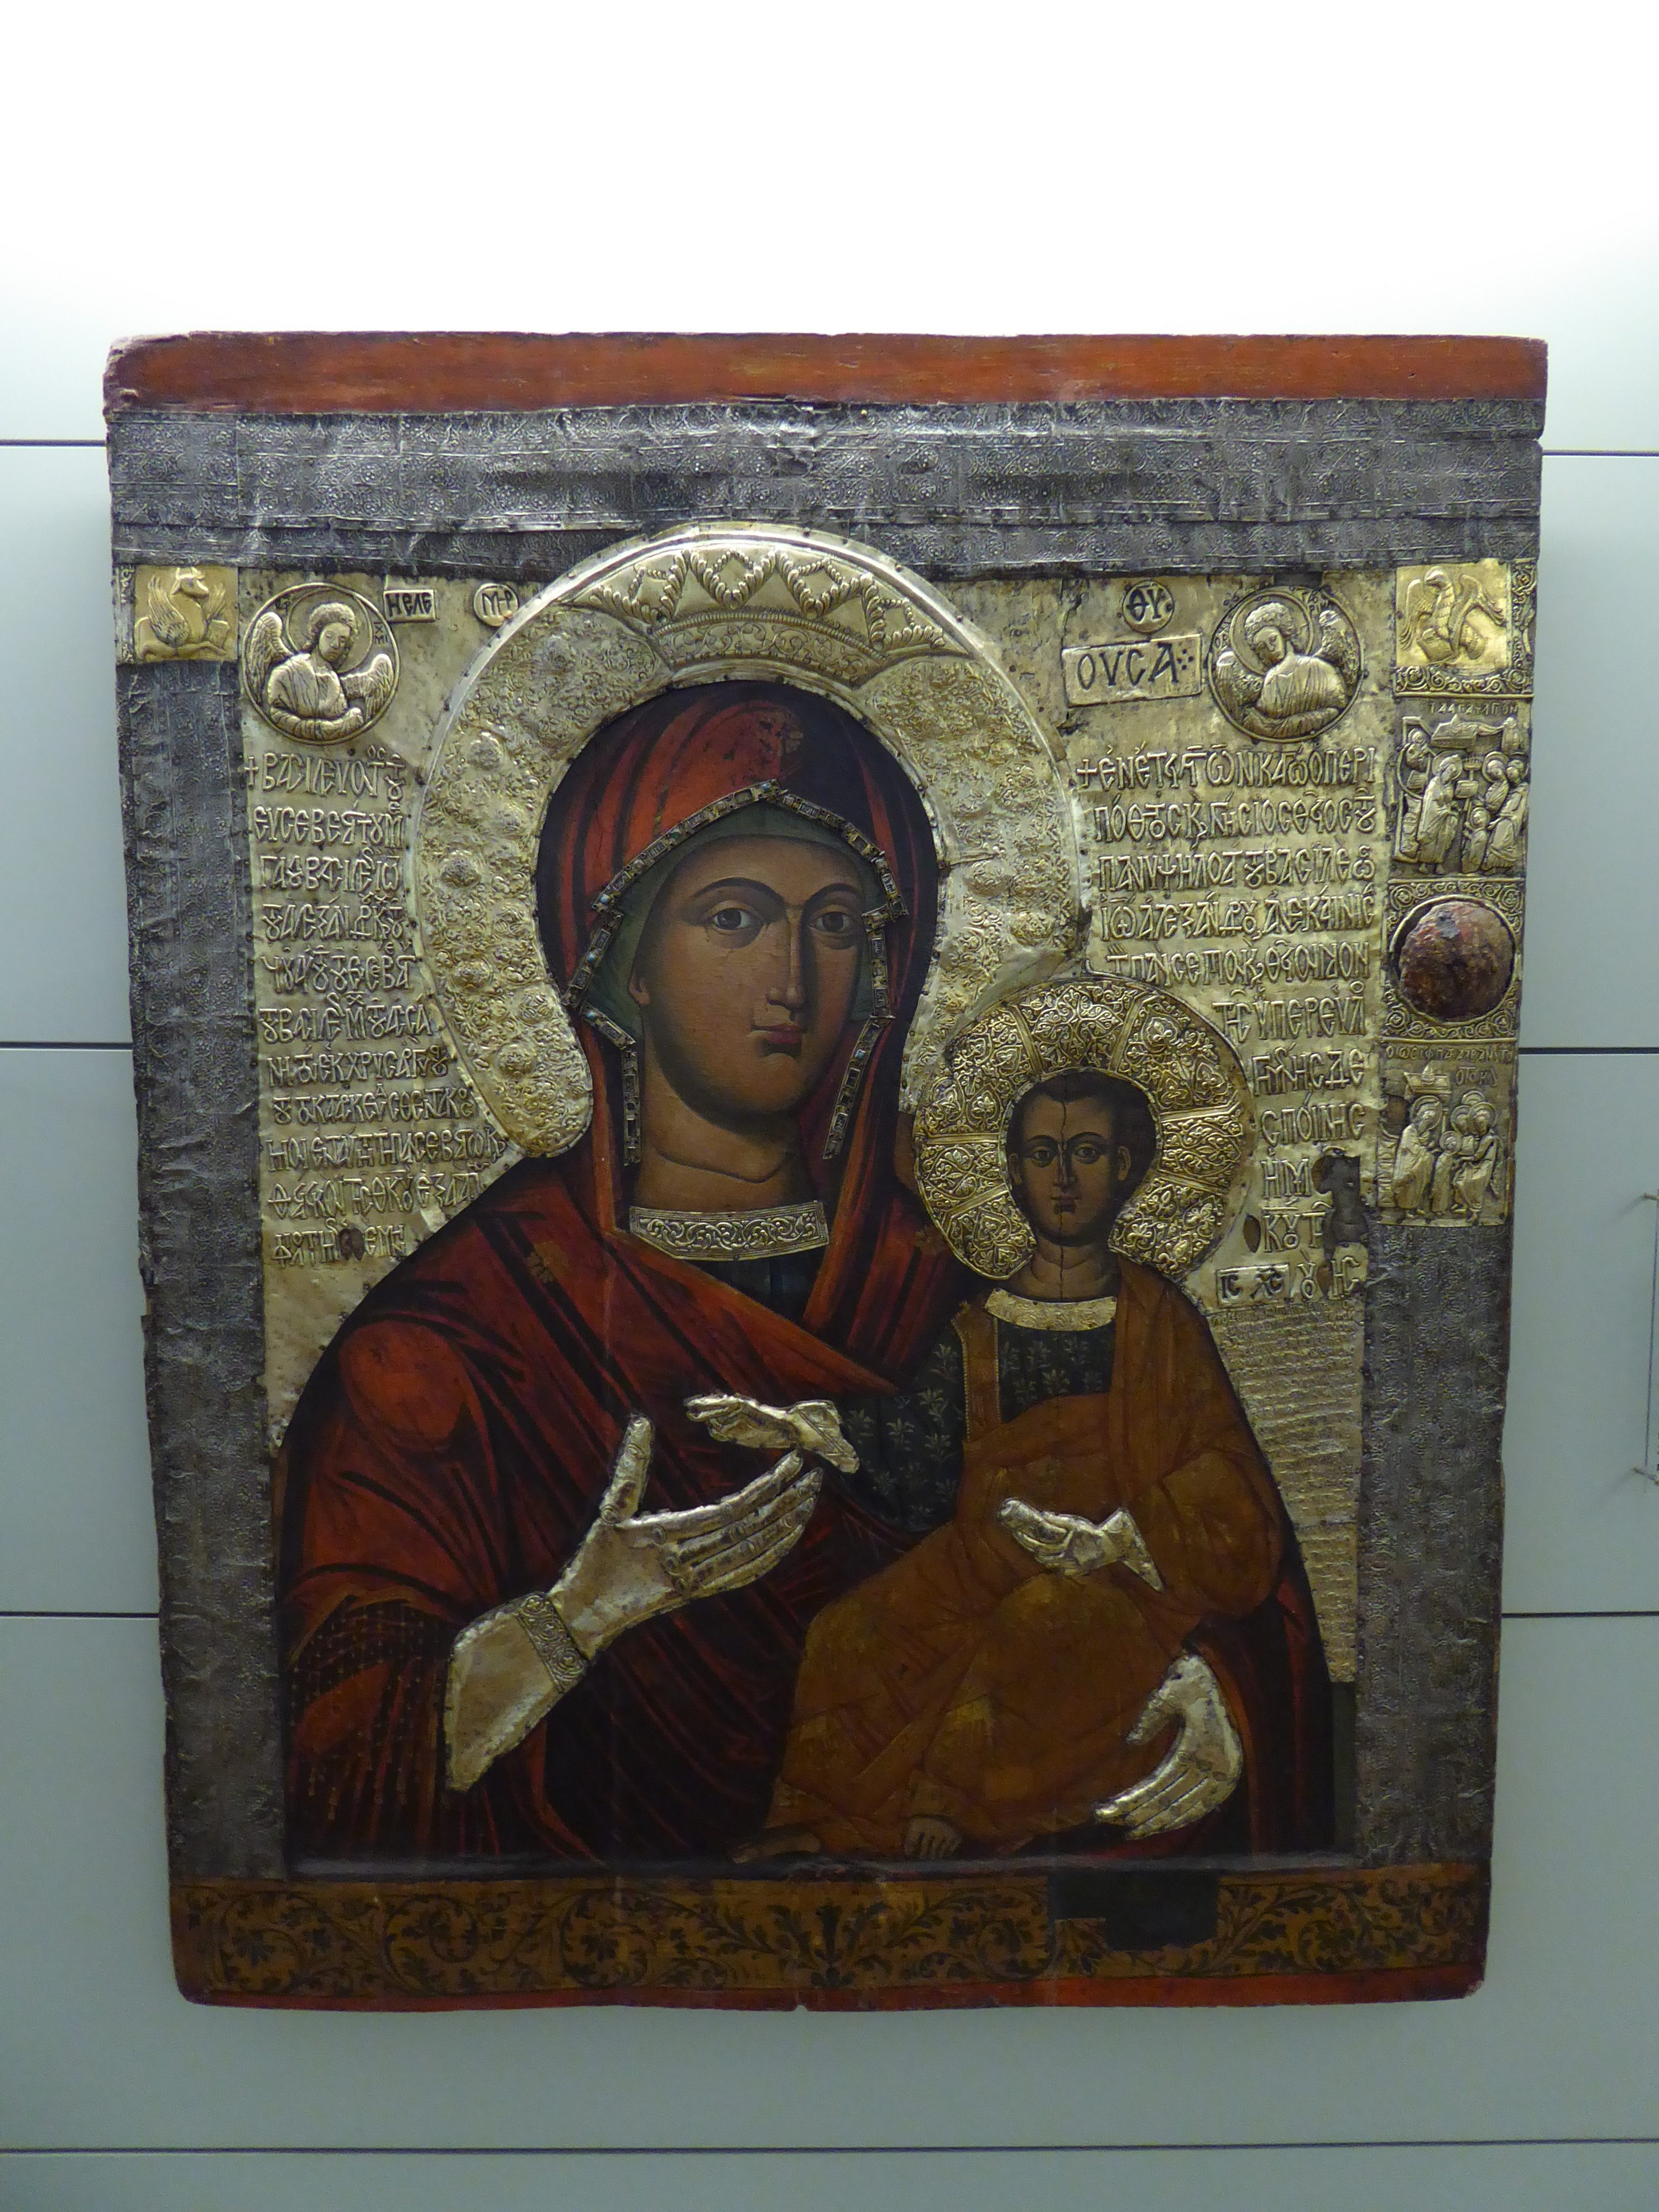 Eastern Orthodox Art in the National Archaeology Museum in Sofia